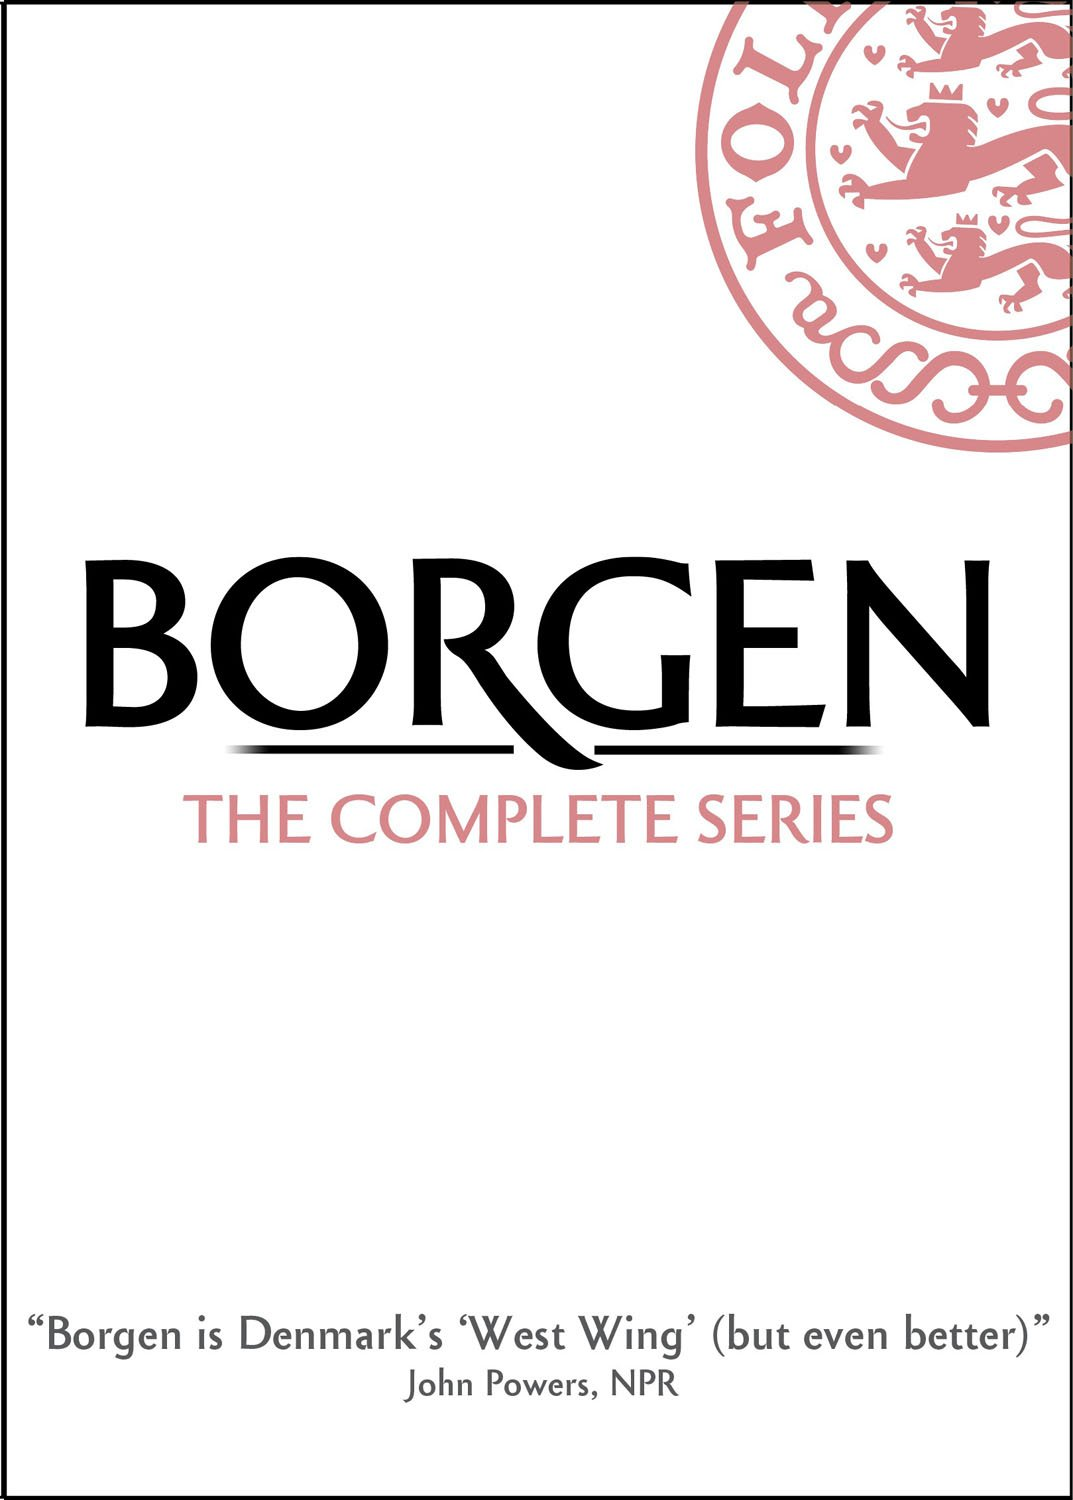 Borgen: The Complete Series by MHZ NETWORKS